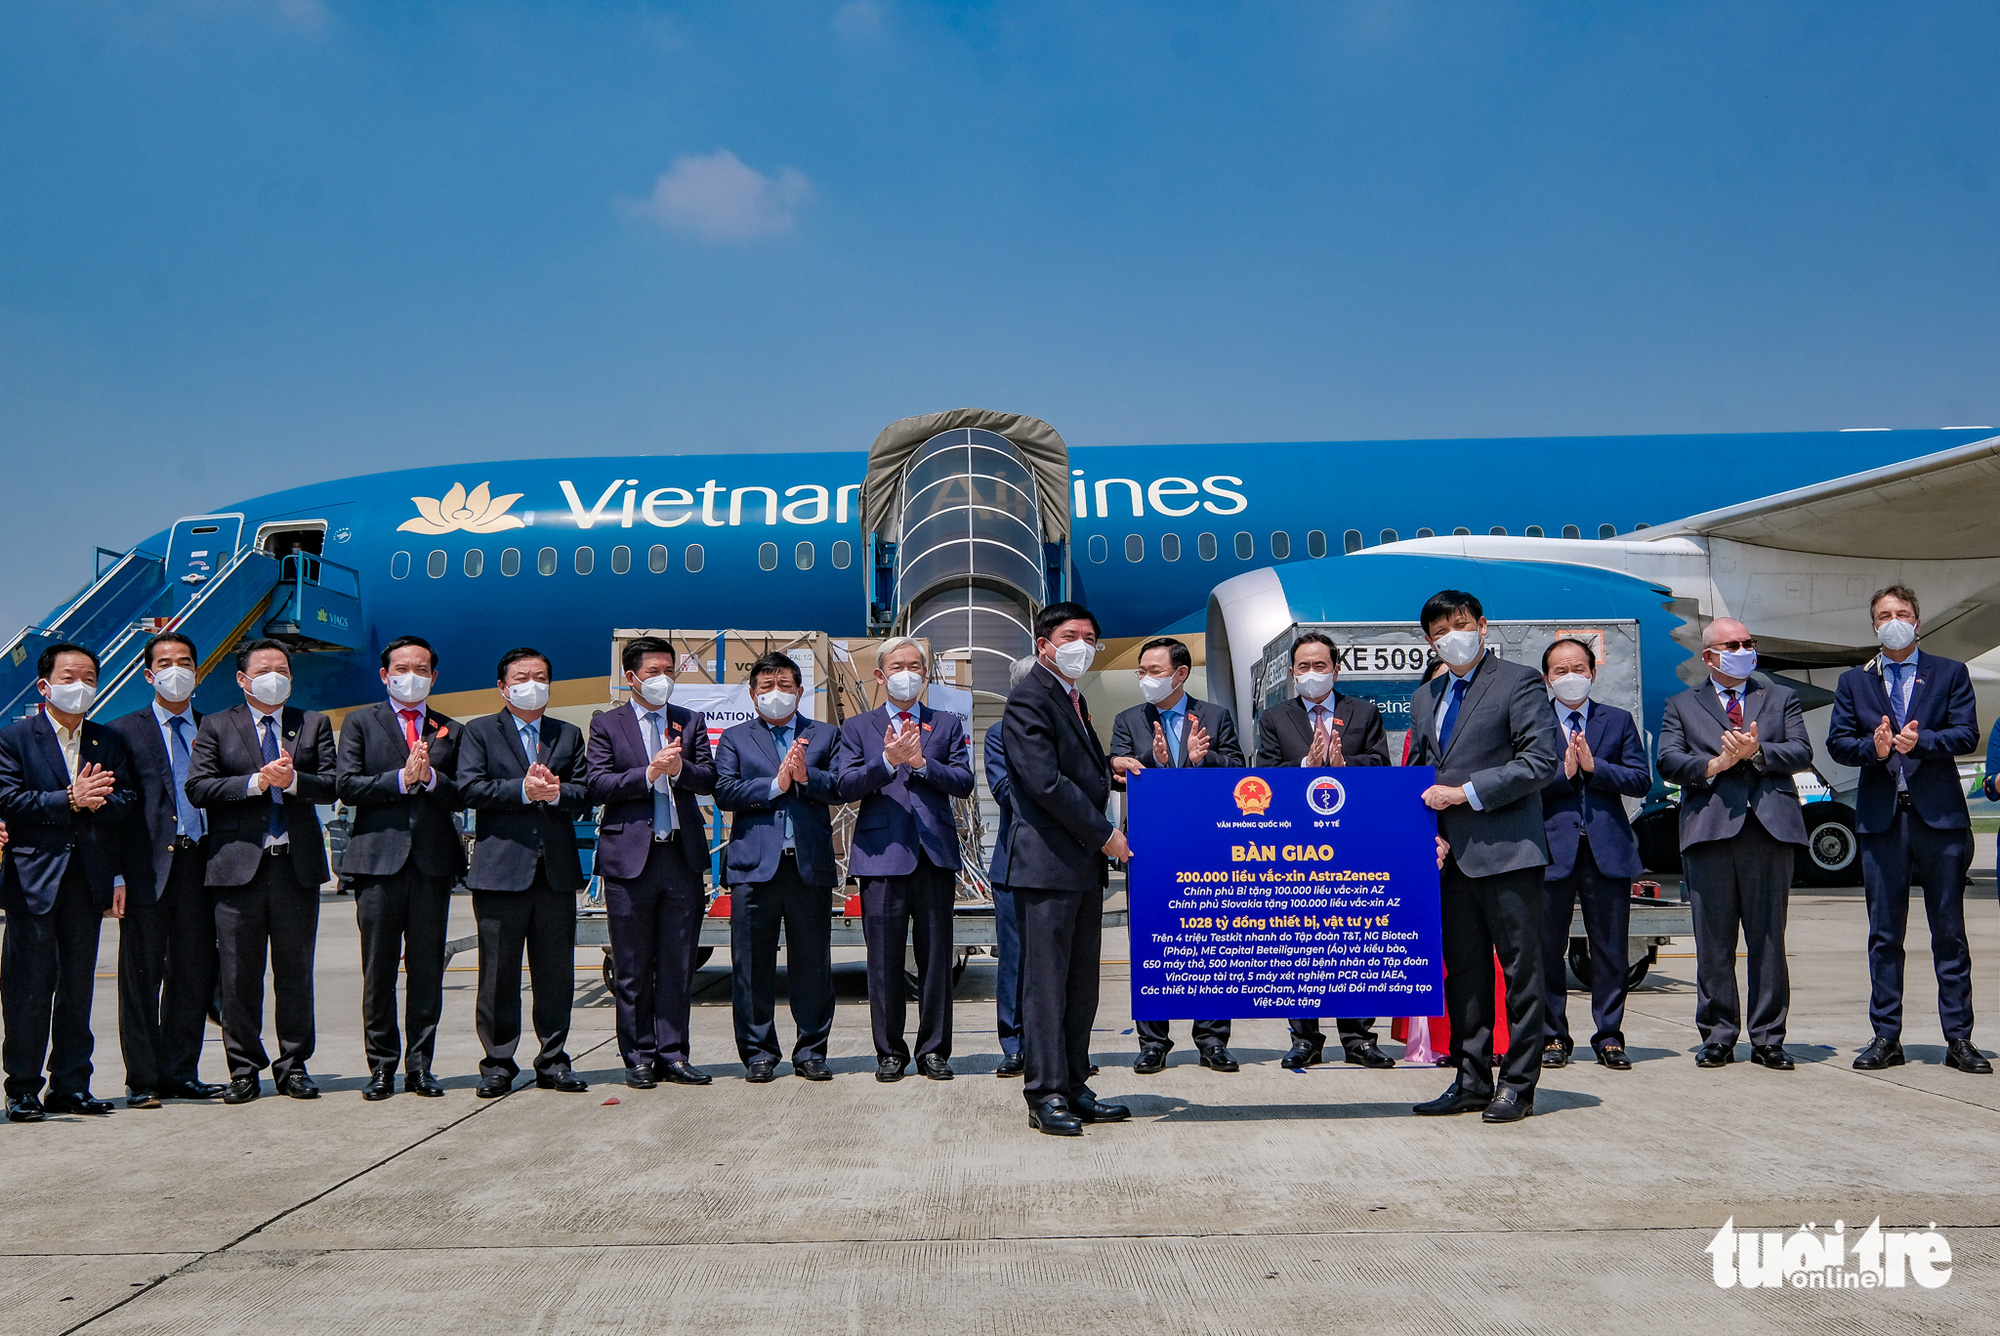 Vietnam legislature hands over 200,000 donated COVID-19 jabs following chairman's trip to Europe